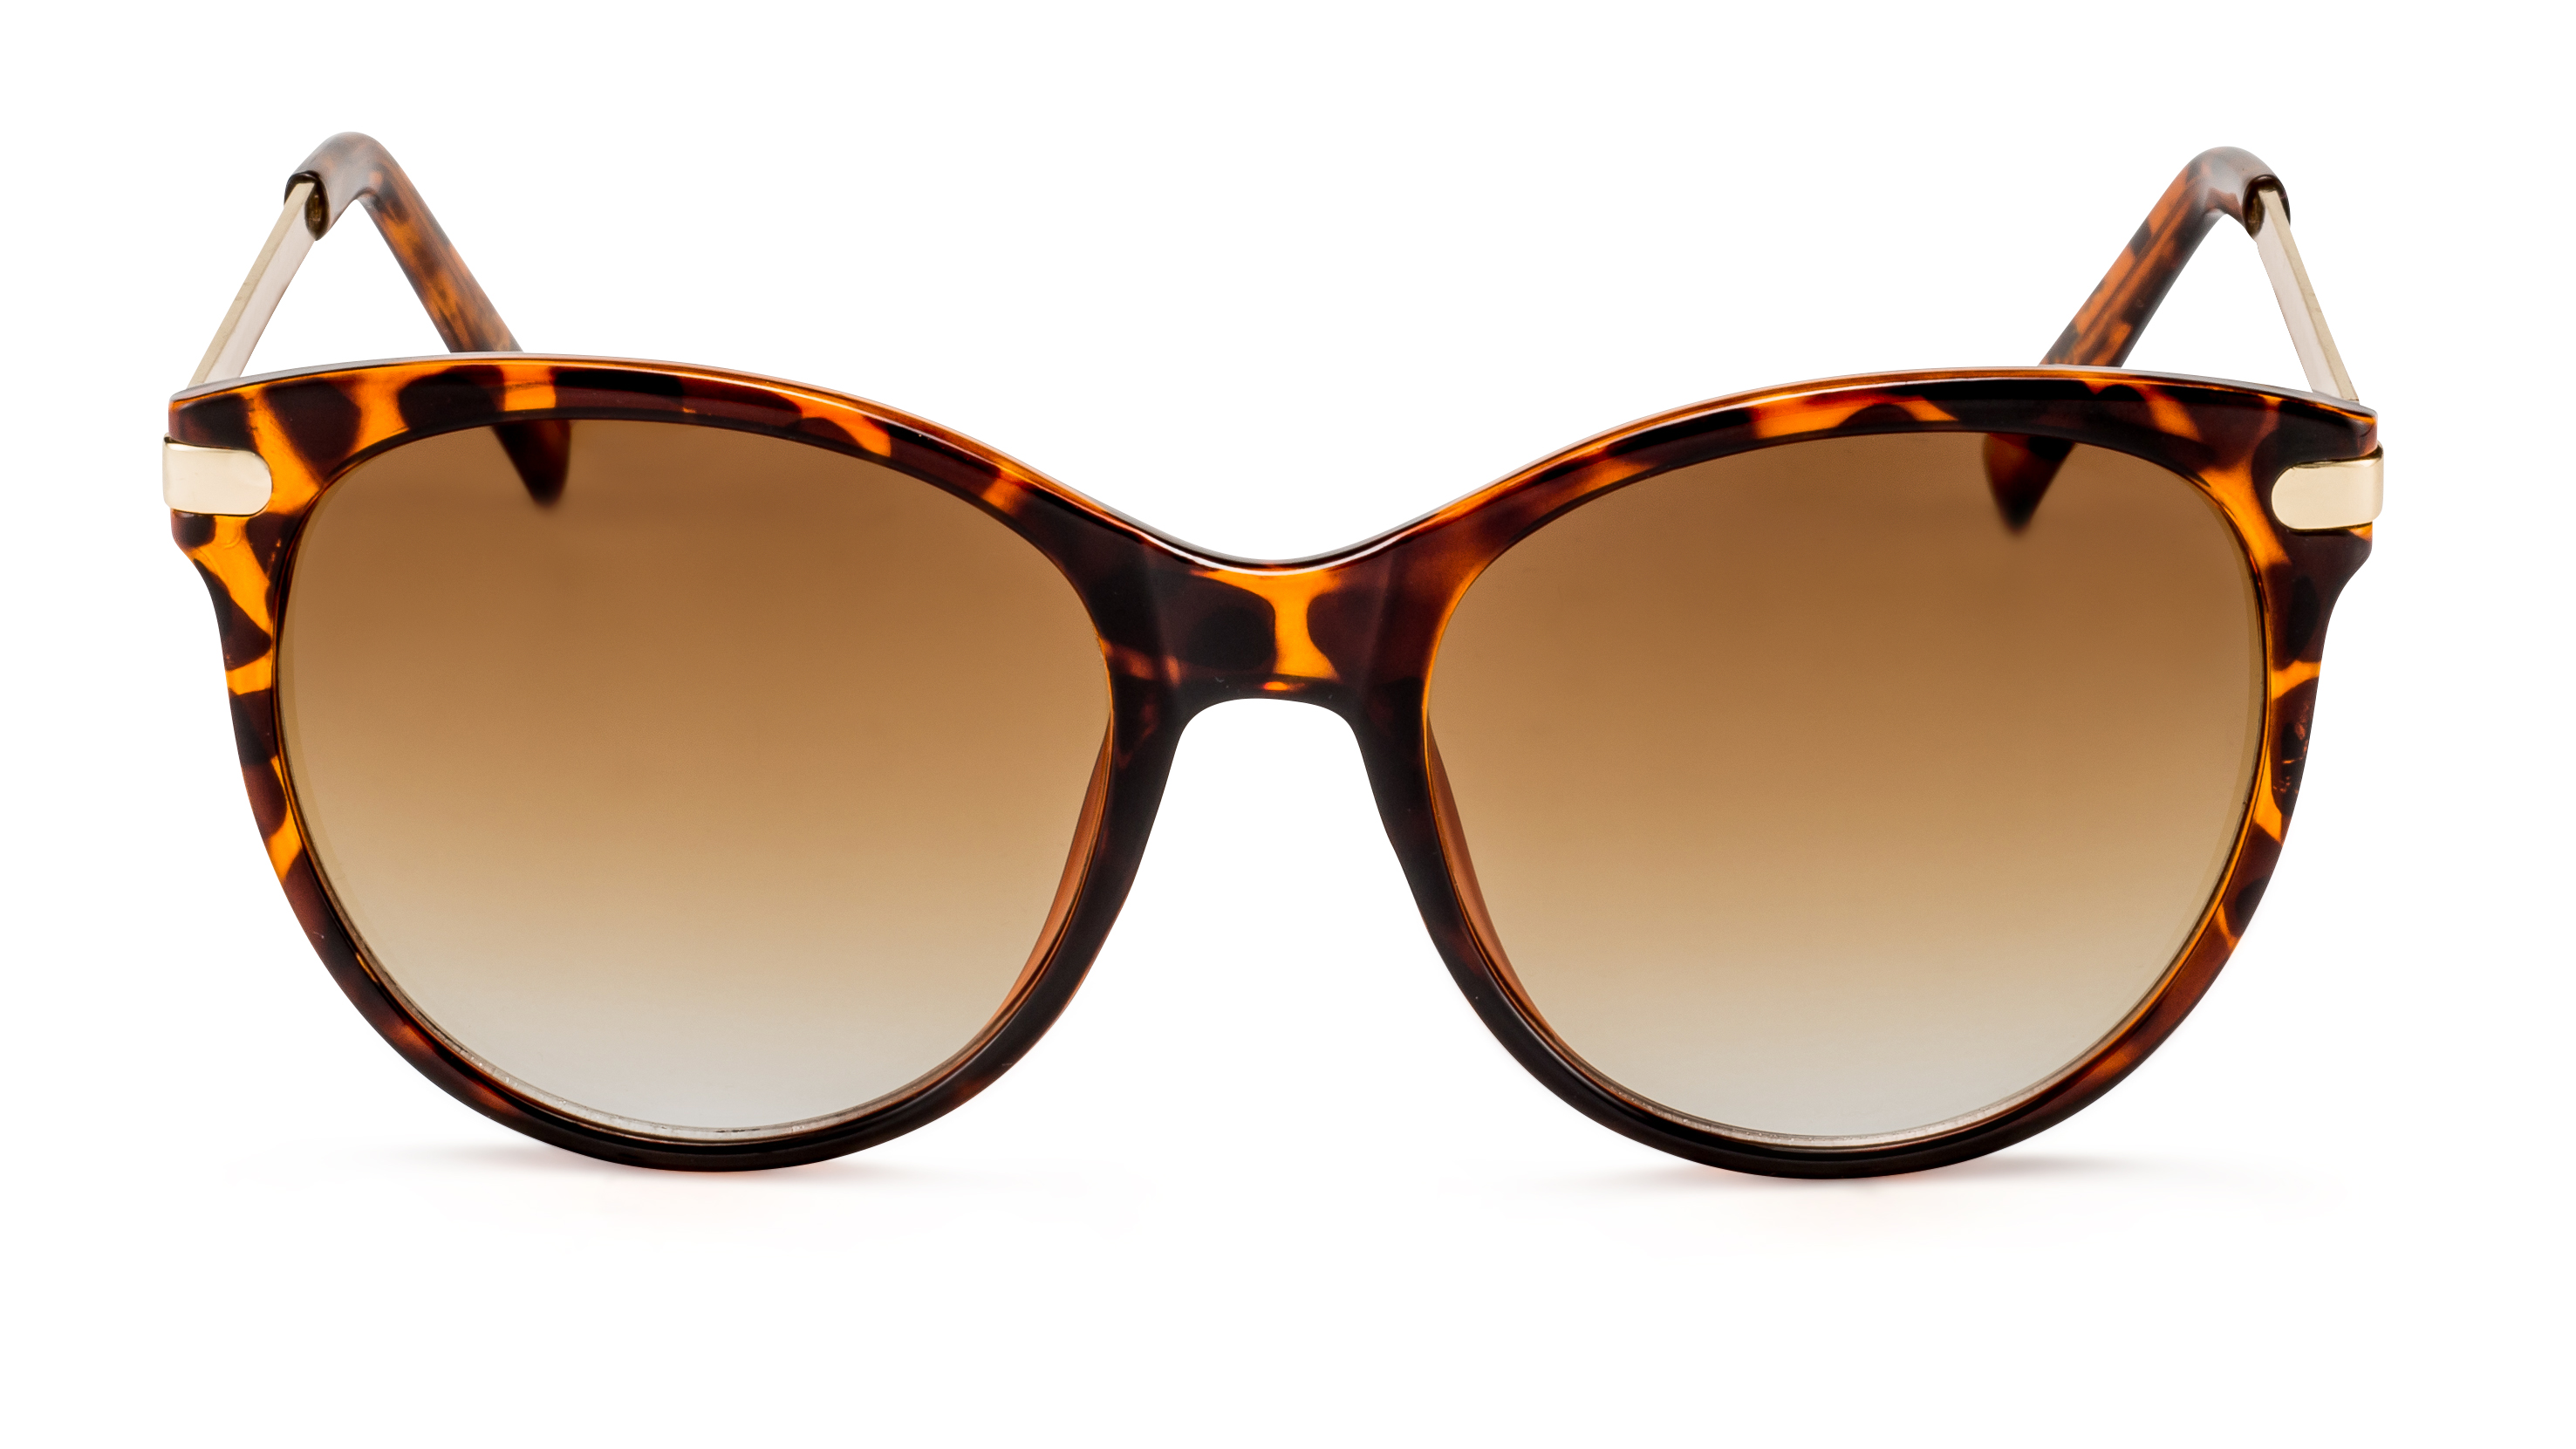 Front view sunglasses 3021109